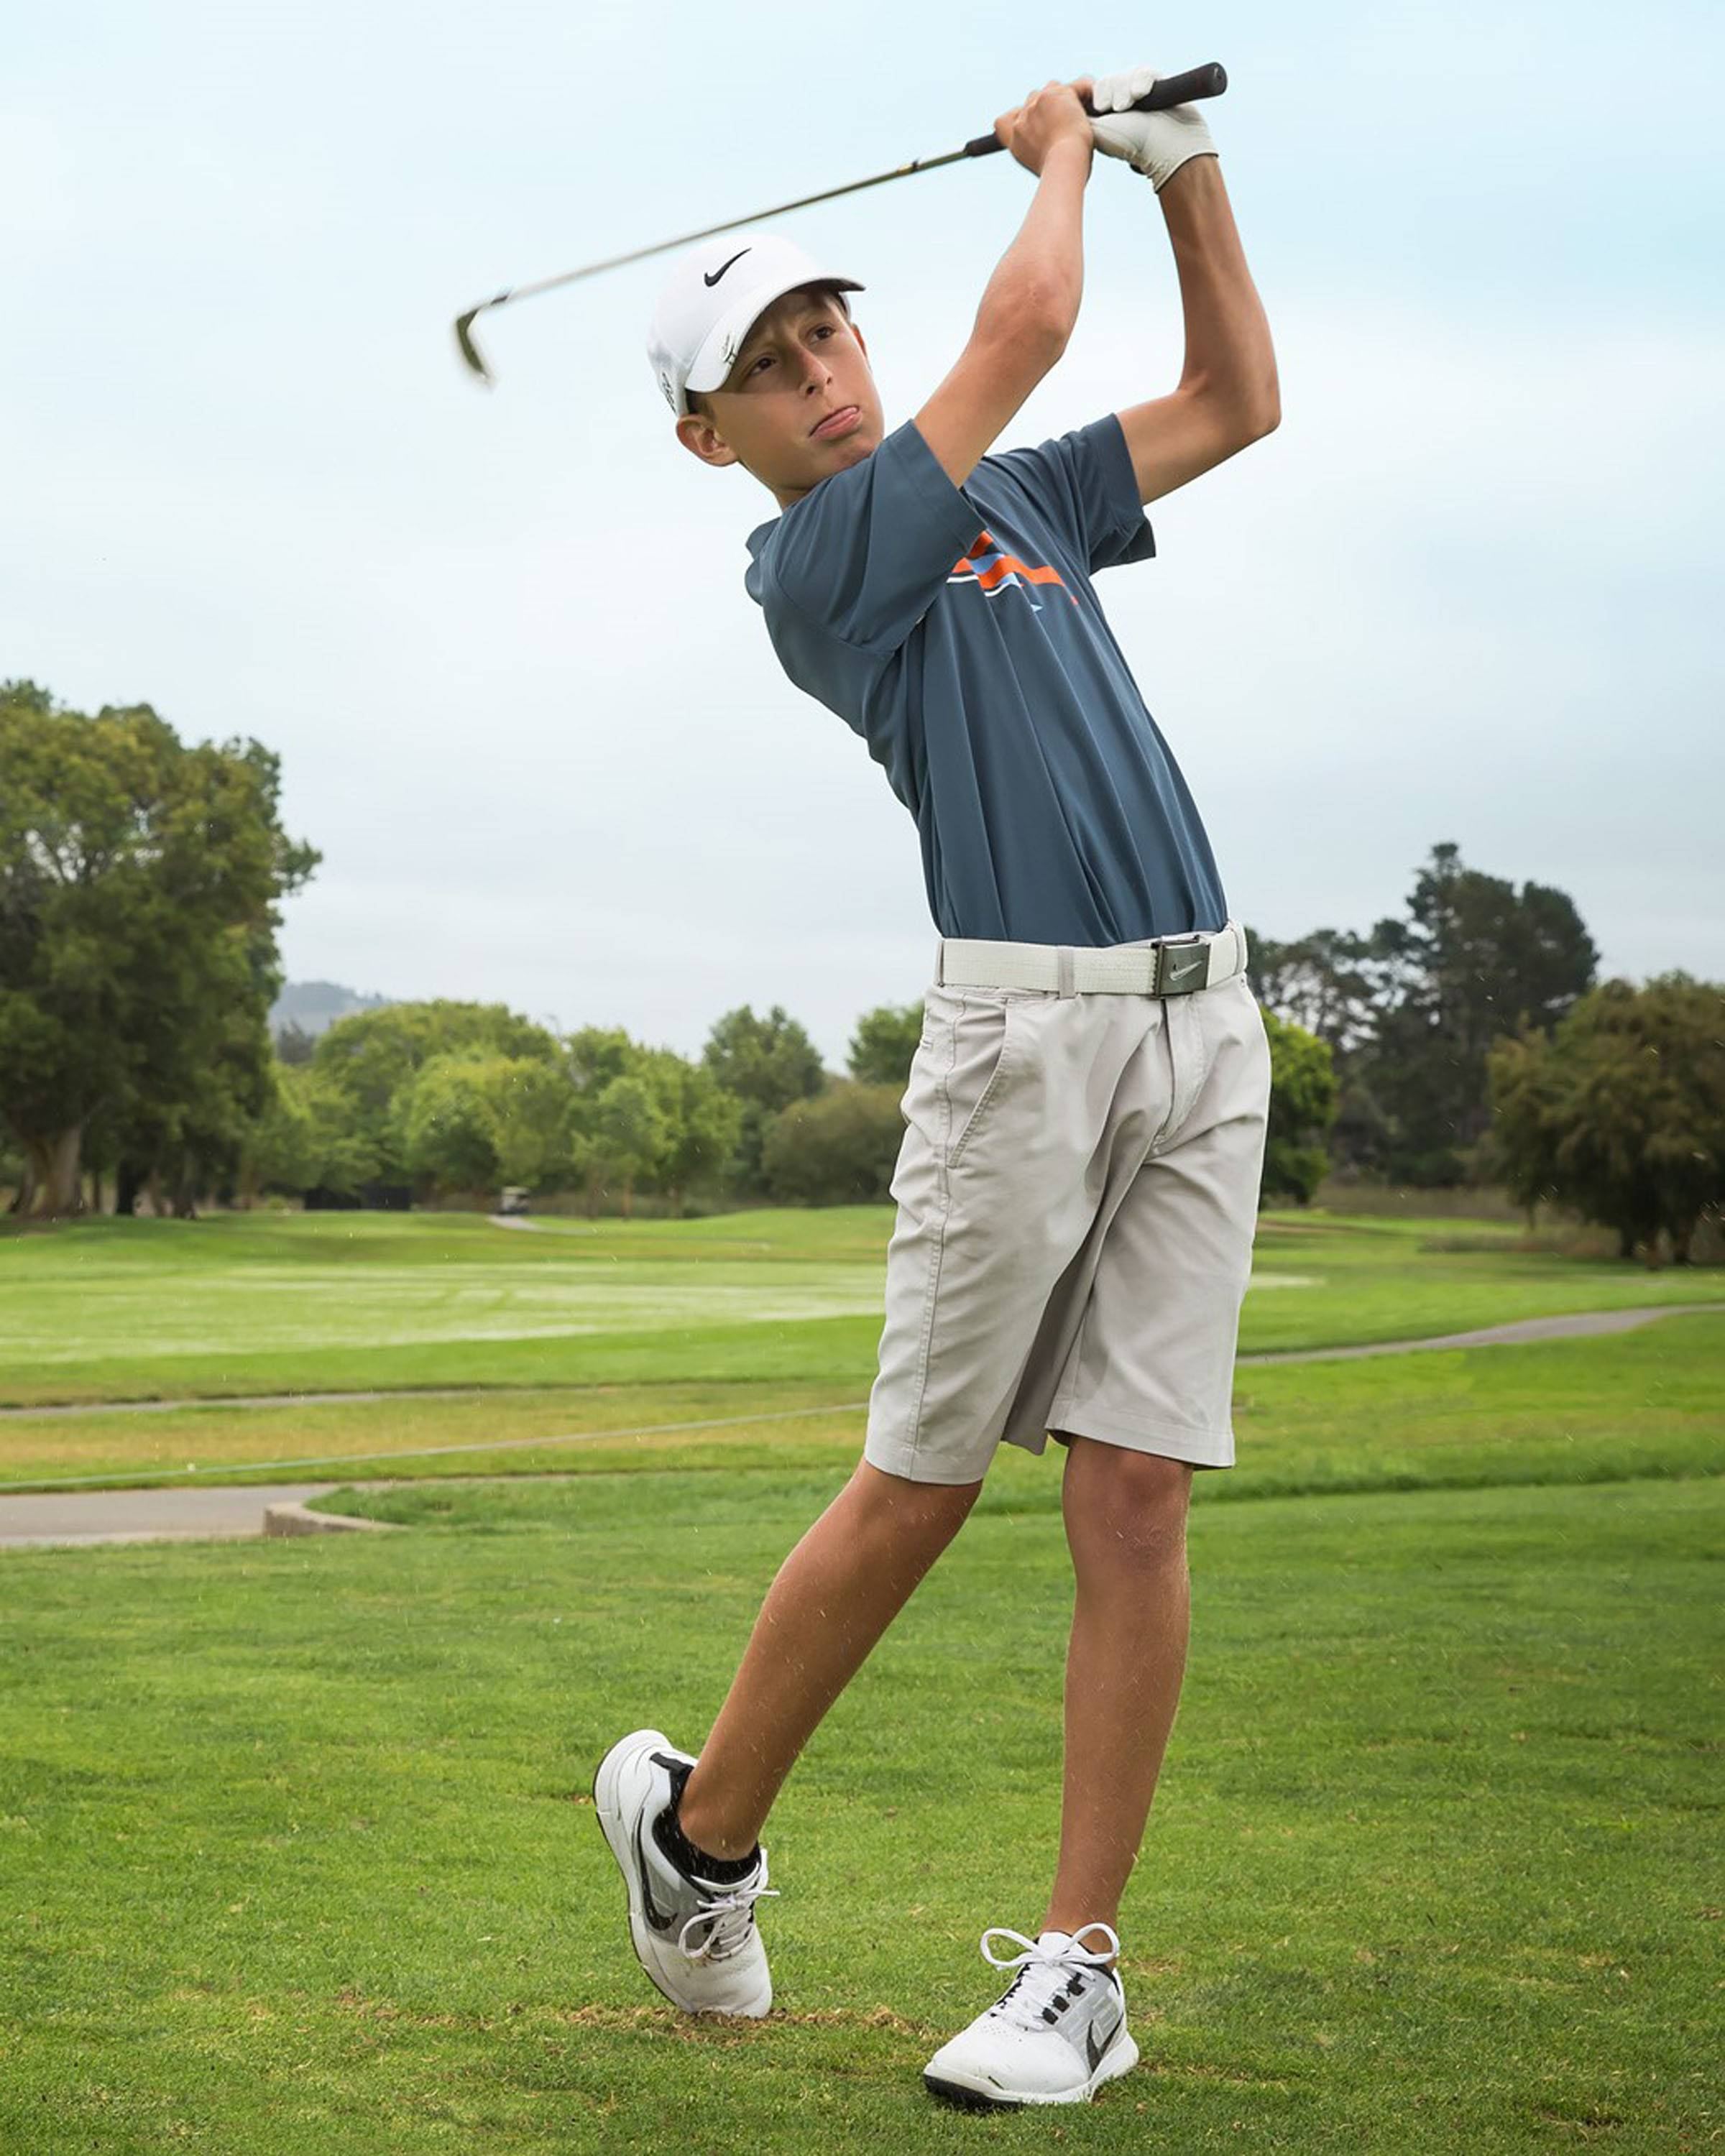 A golfer practices his swing at the Nike Junior Golf Camp in Monterey, California.